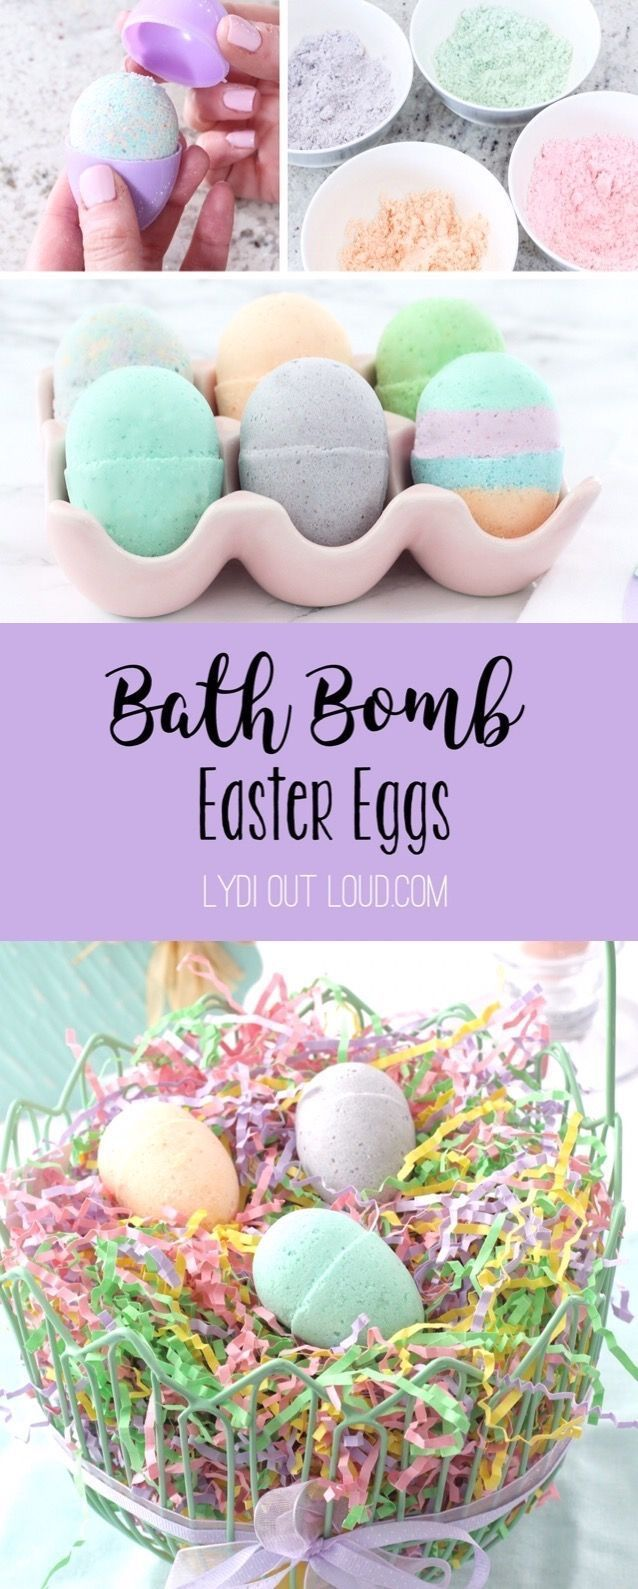 881 best easter ideas images on pinterest indoor activities kids 881 best easter ideas images on pinterest indoor activities kids natural crafts and craft negle Image collections